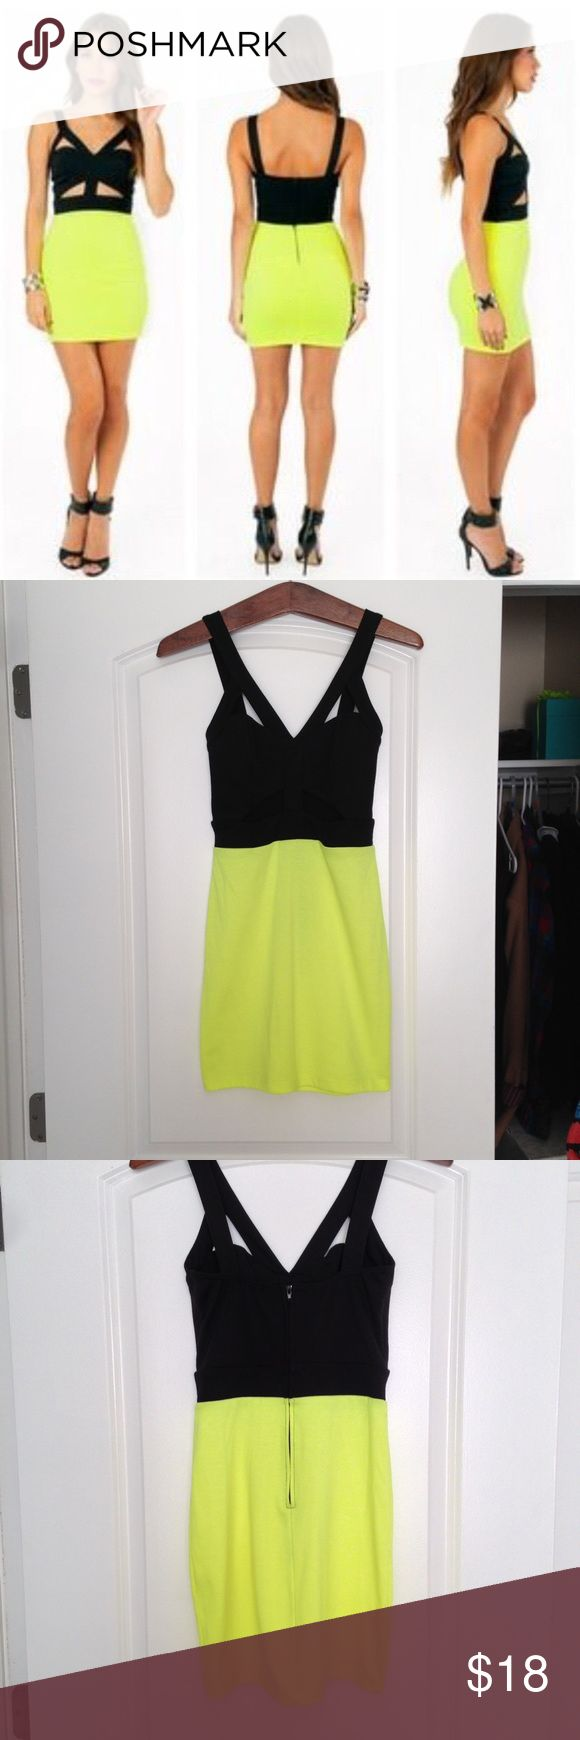 """•SALE• Neon Cut Out Dress from Tobi Neon cut out body con dress from Tobi. Color: neon yellow and black. Size: S. Great going out /party dress. Note: It looks like something rubbed off on the bottom right corner of the dress, but it isn't very noticeable (pictured). Approx. 30"""" in length. 85% polyester, 12% rayon, 2% spandex. Tobi Dresses Mini"""